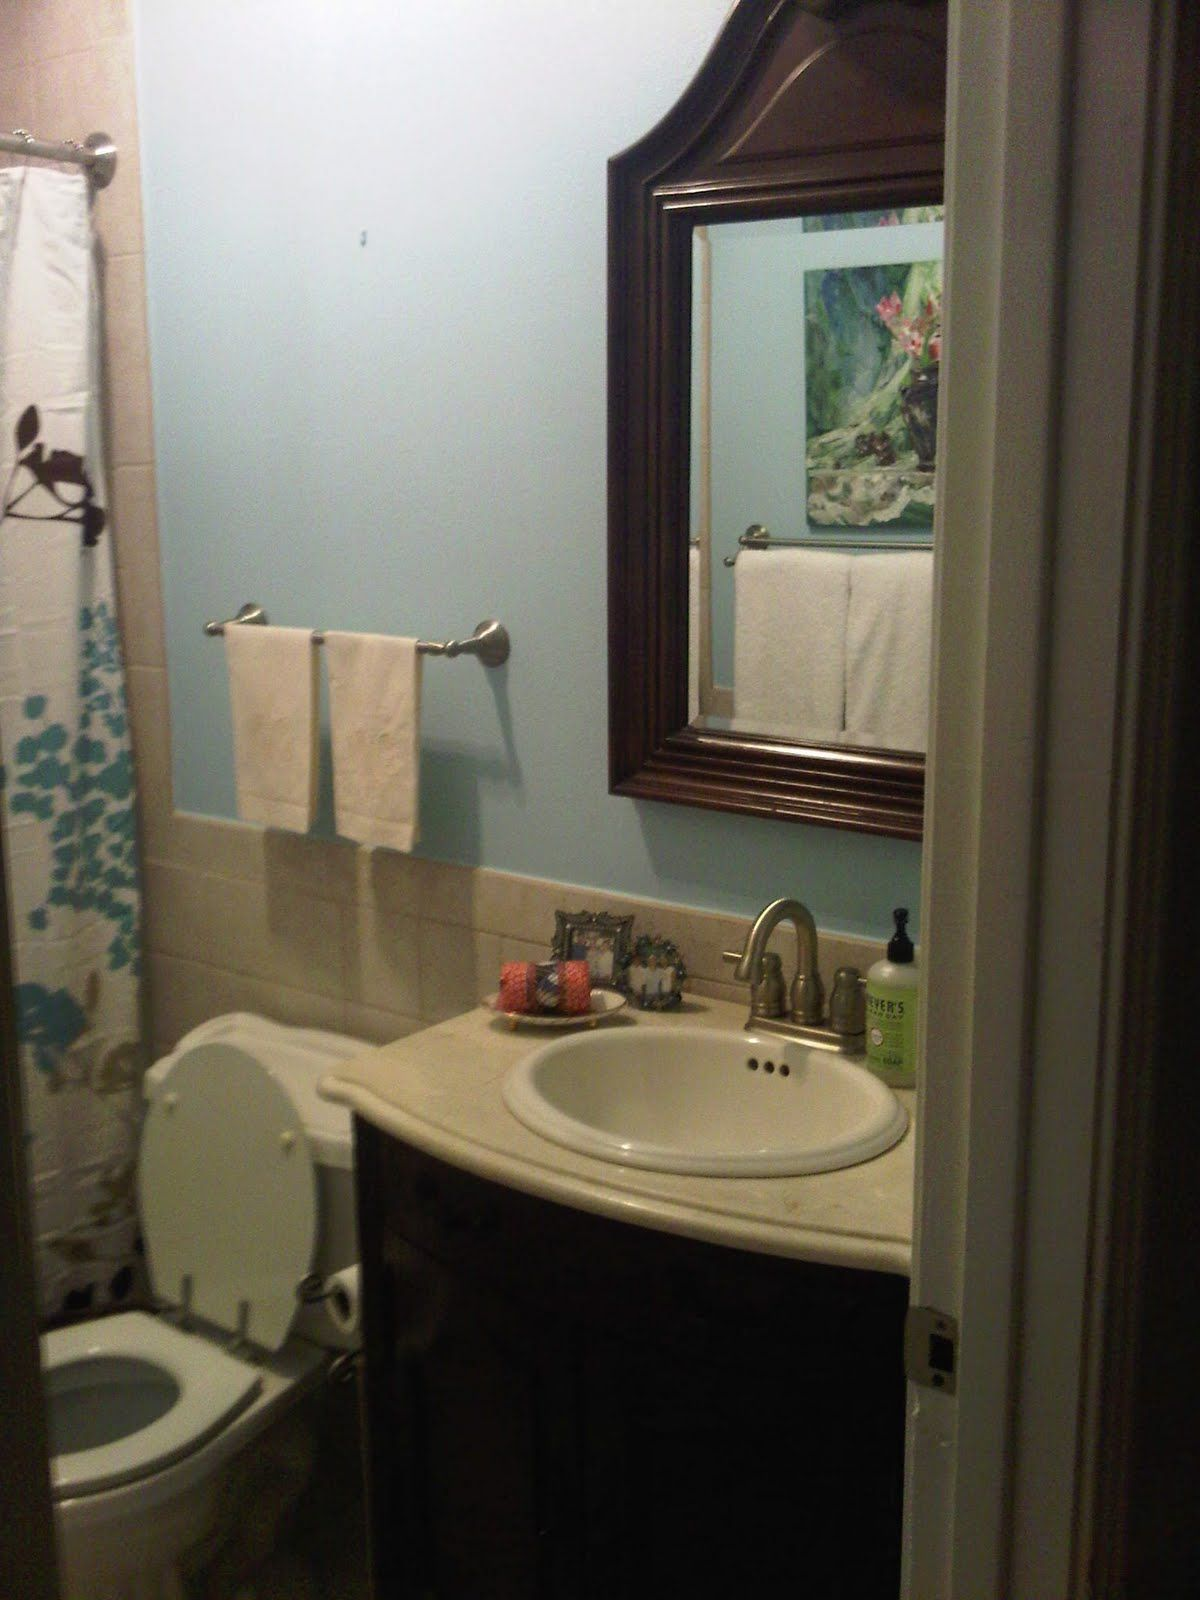 Small bathroom no window paint color google search for Small bathroom paint colors